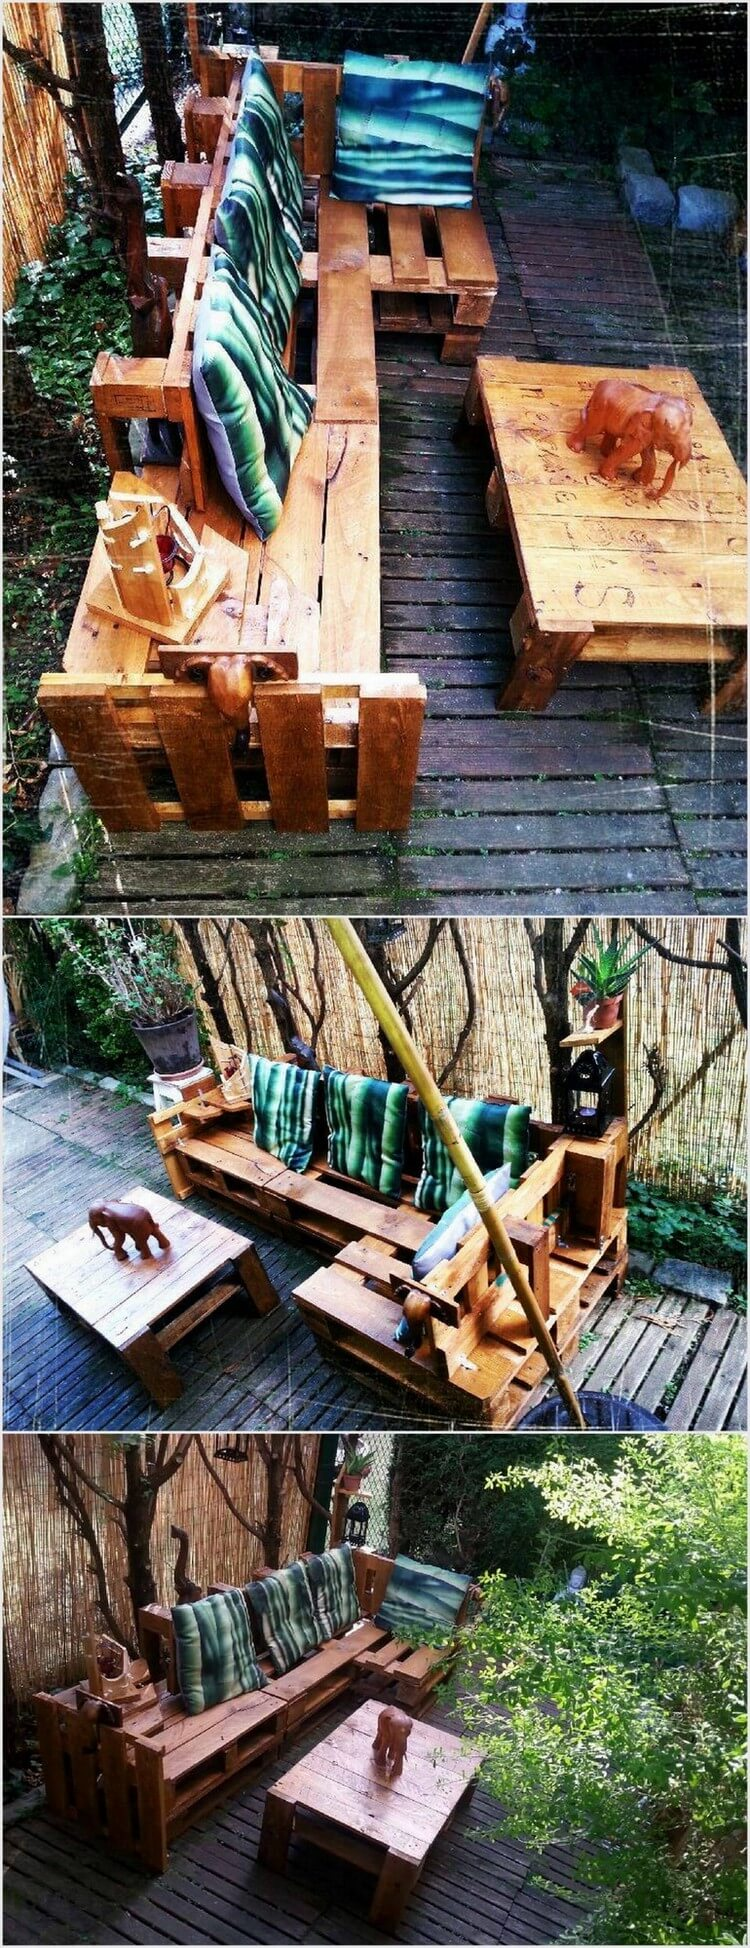 Wood Pallet Garden Sofa with Table